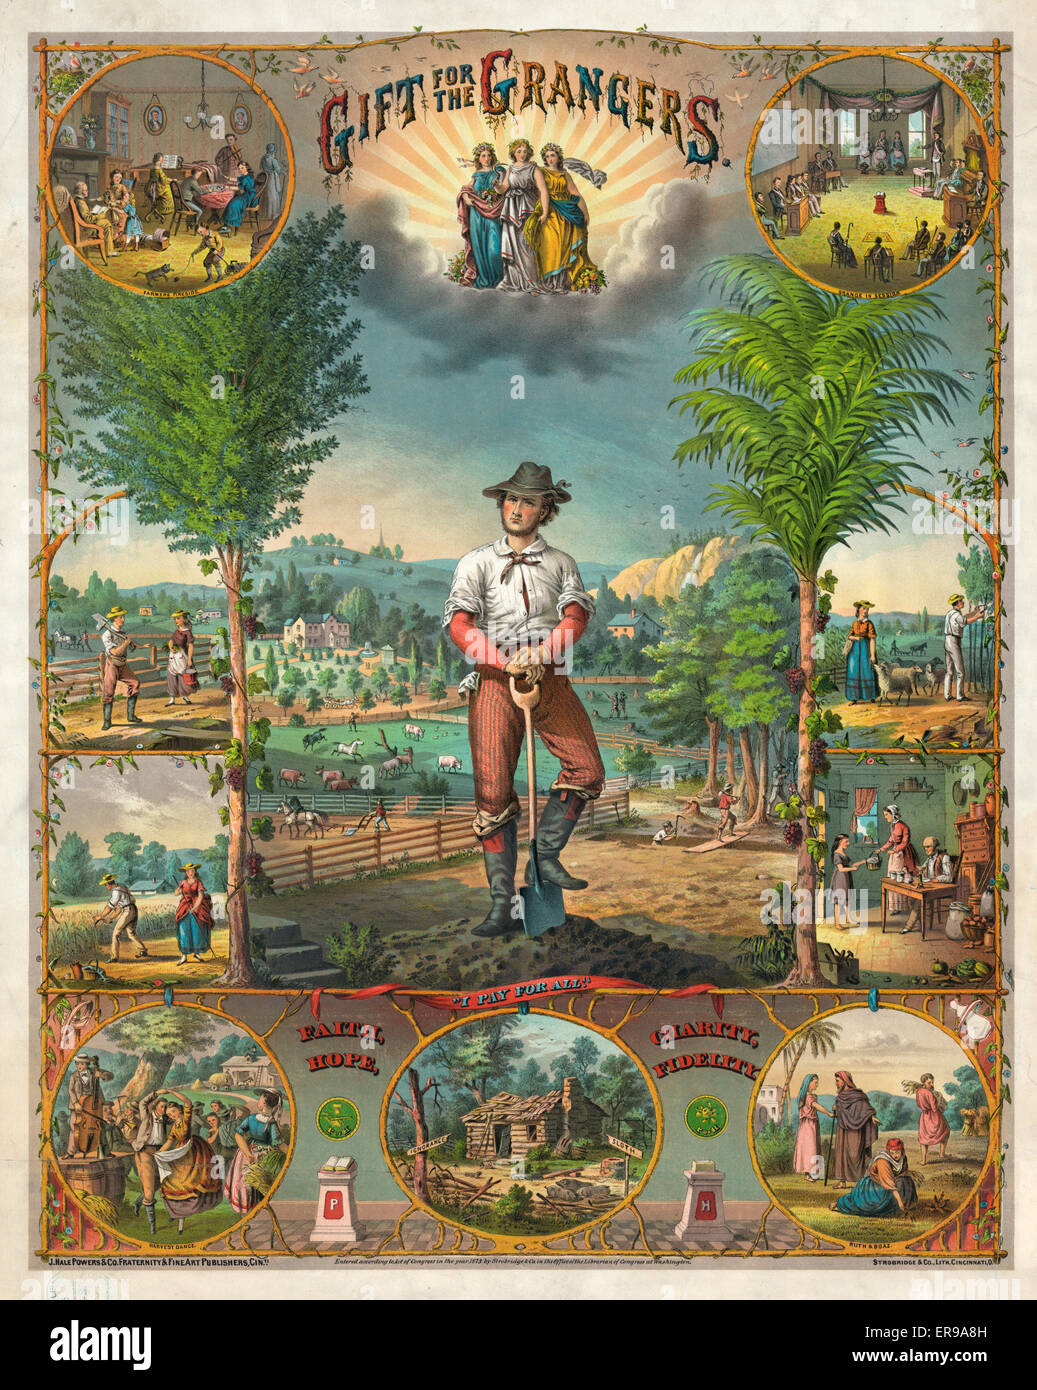 Gift for the grangers. Promotional print for Grange members showing scenes of farming and farm life. Date c1873. - Stock Image